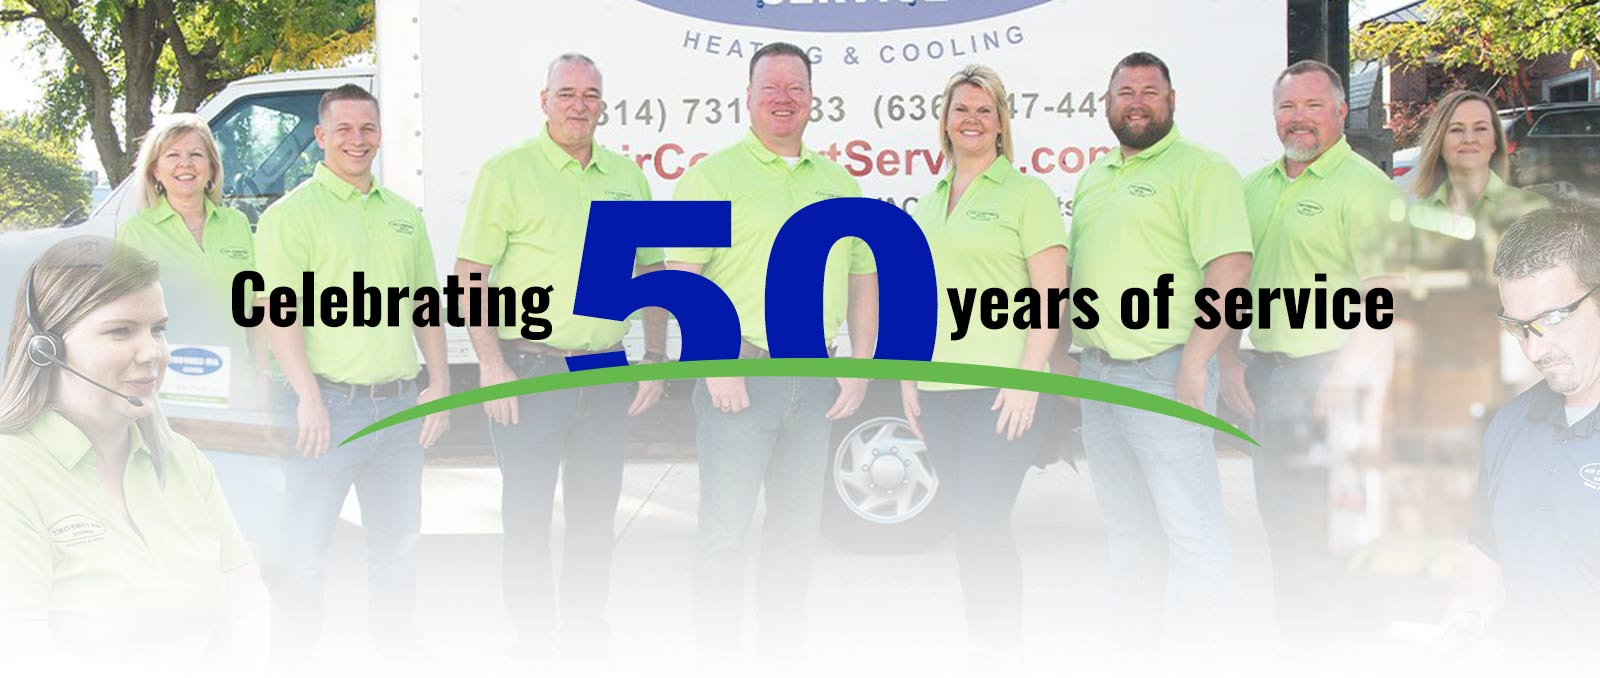 St Louis Heating And Cooling Services Ac And Heating